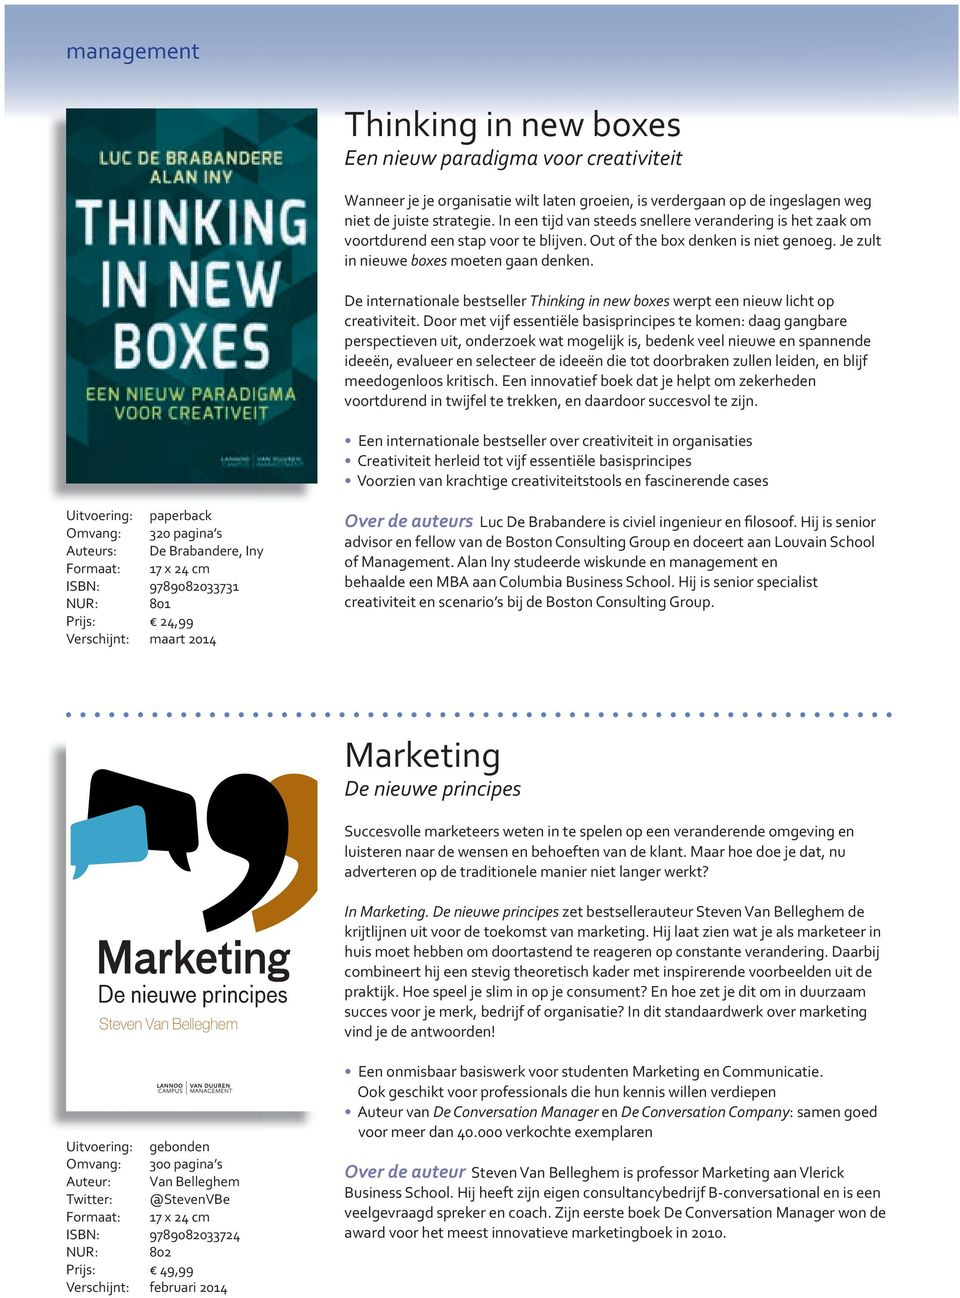 De internationale bestseller Thinking in new boxes werpt een nieuw licht op creativiteit.